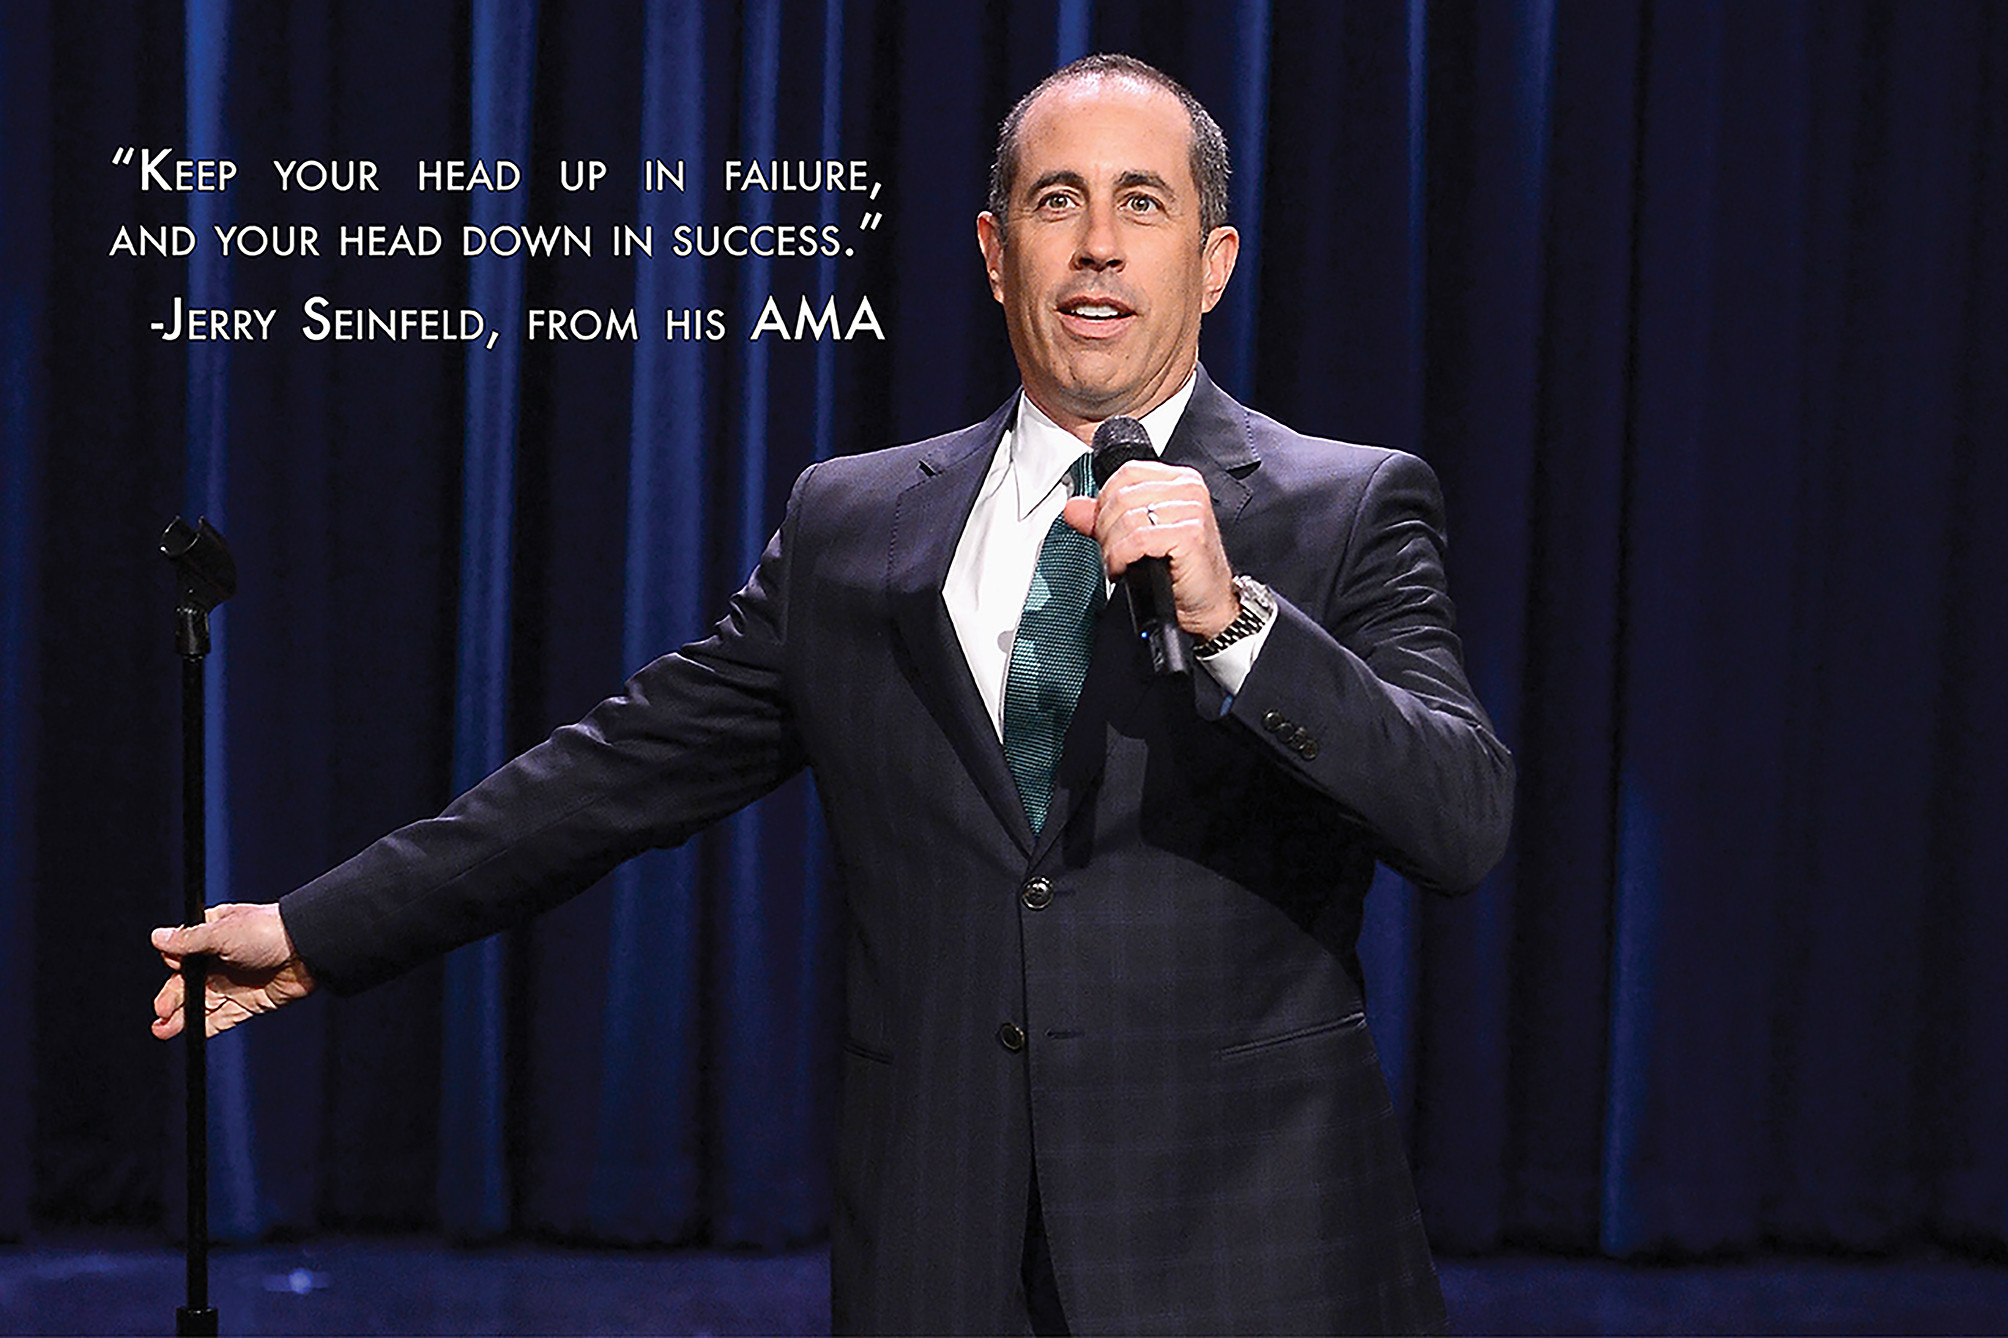 Seinfeld Quotes Stunning Jerry Seinfeld Quotes That Are Also Brilliant Words Of Wisdom